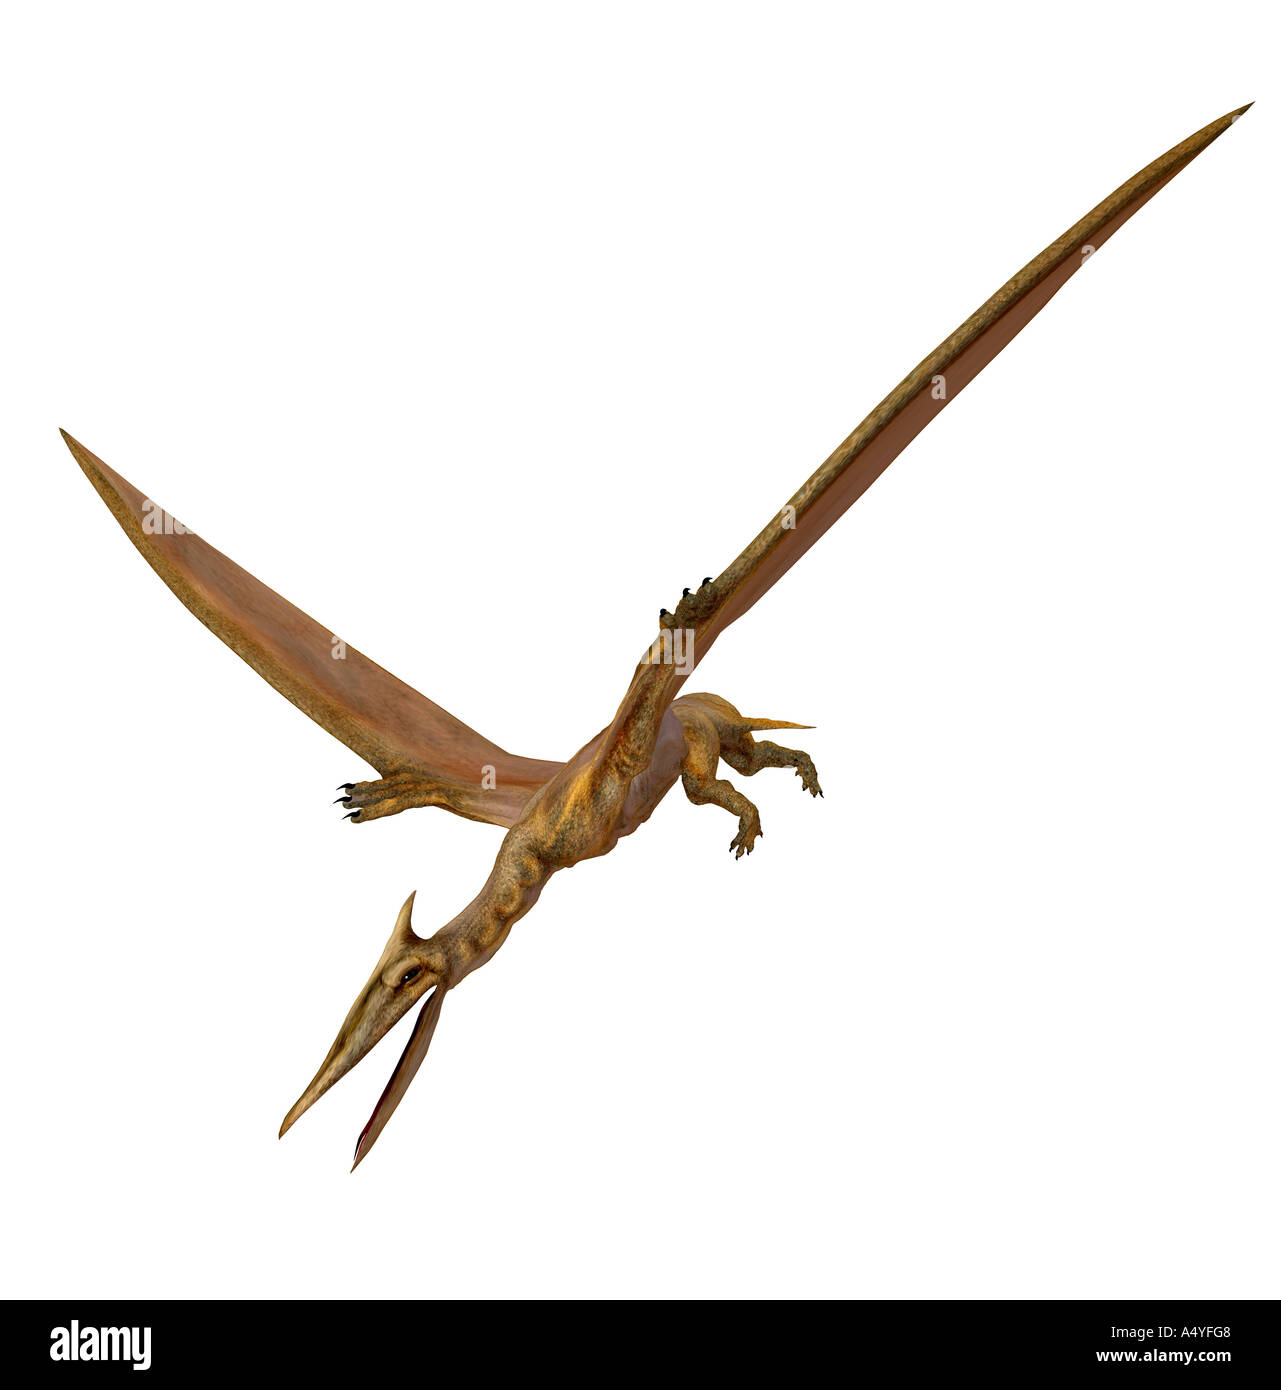 The Quetzalcoatlus northropi was a flight dinosaur with approx. 12 m span and lived in the time of the Cretaceous period . The - Stock Image